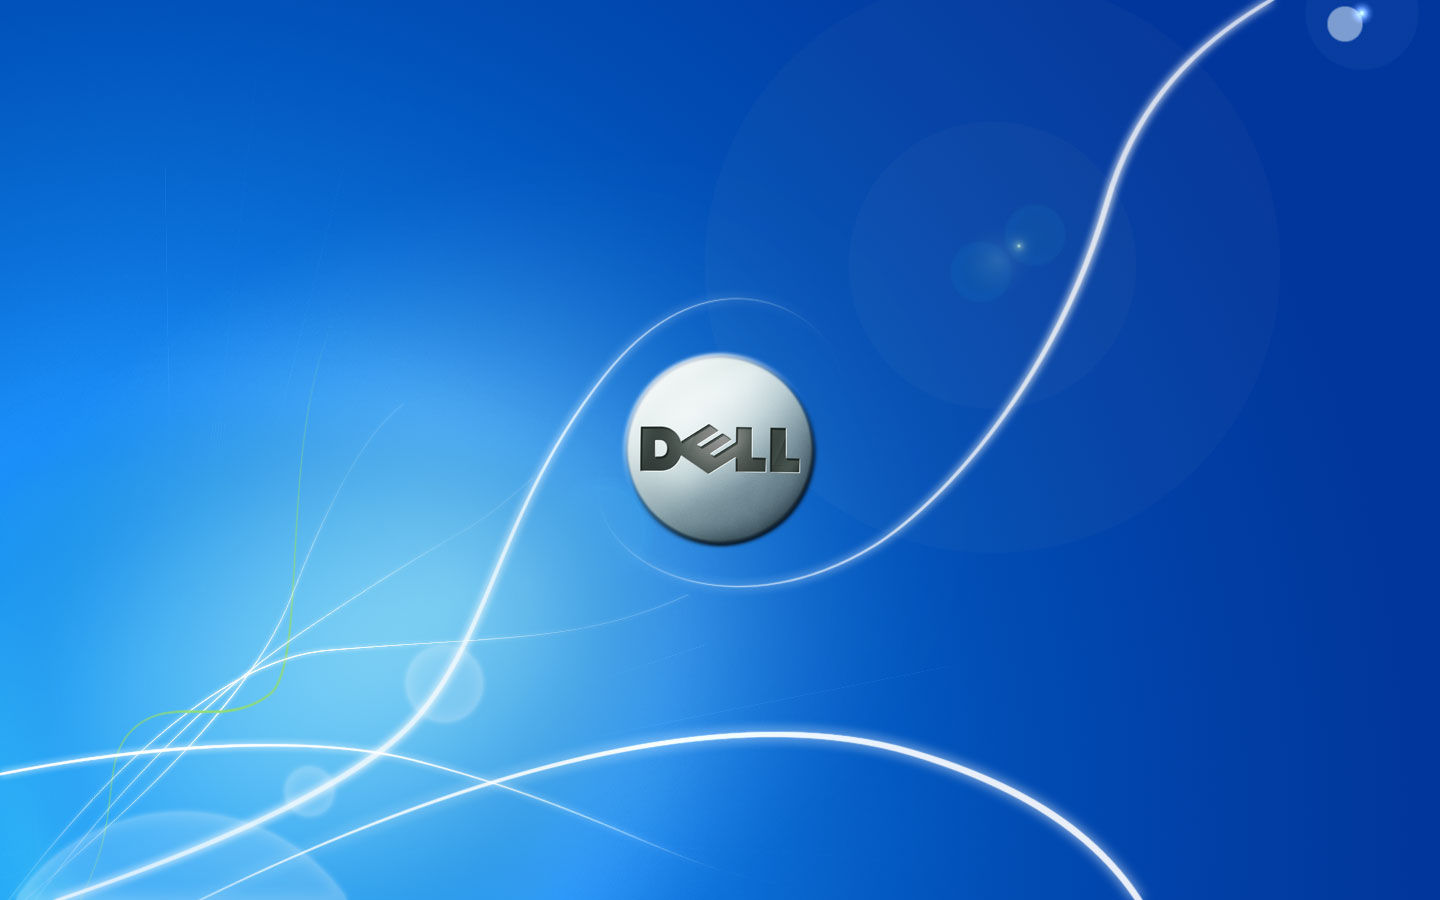 dell wallpaper backgrounds 1440x900